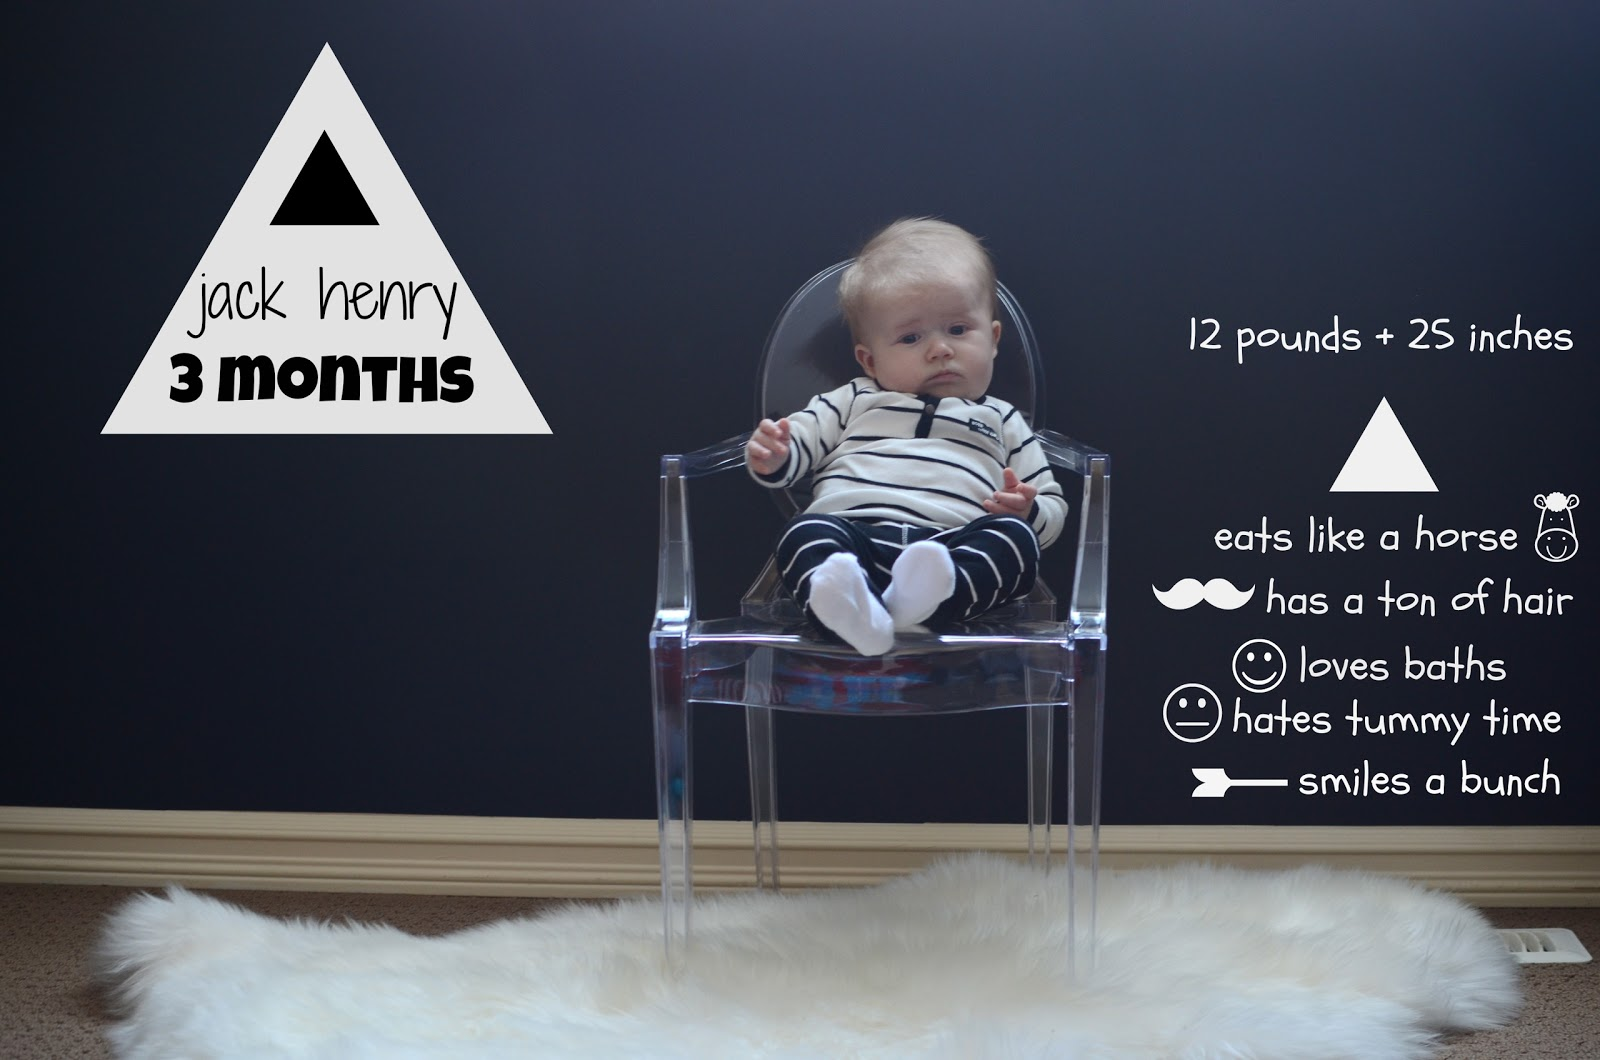 happy 3 months quotes